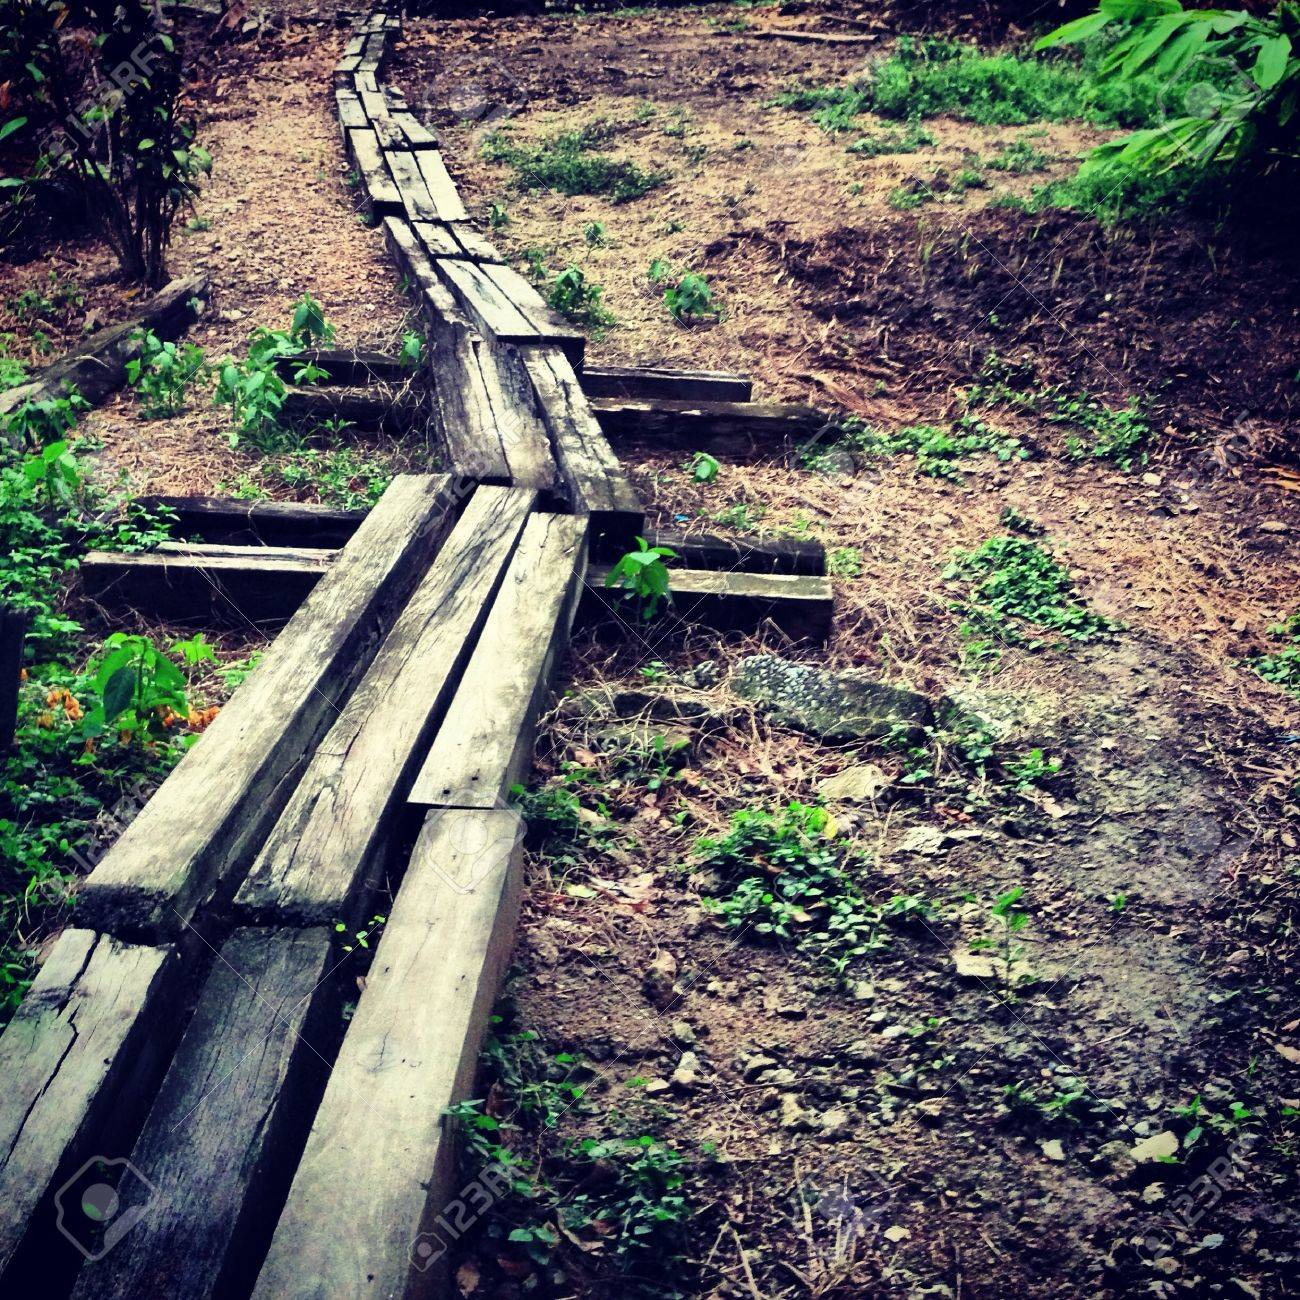 The weathered wooden path on the ground - 21661754